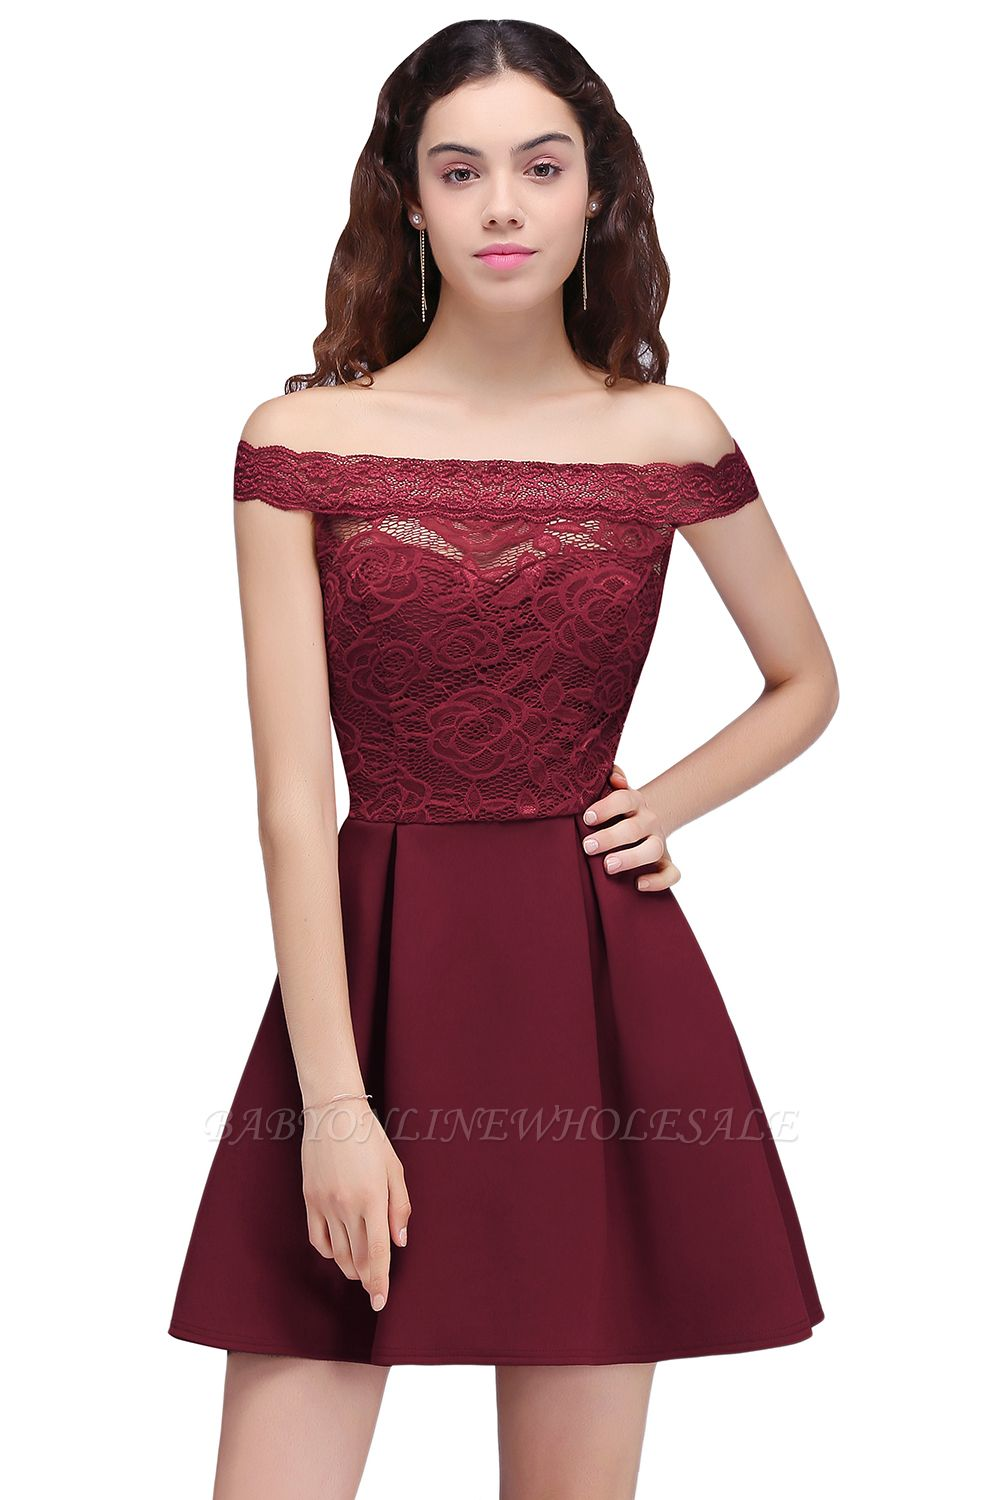 BROOKLYN | A-Line Off-the-shoulder Short Lace Burgundy Homecoming Dresses